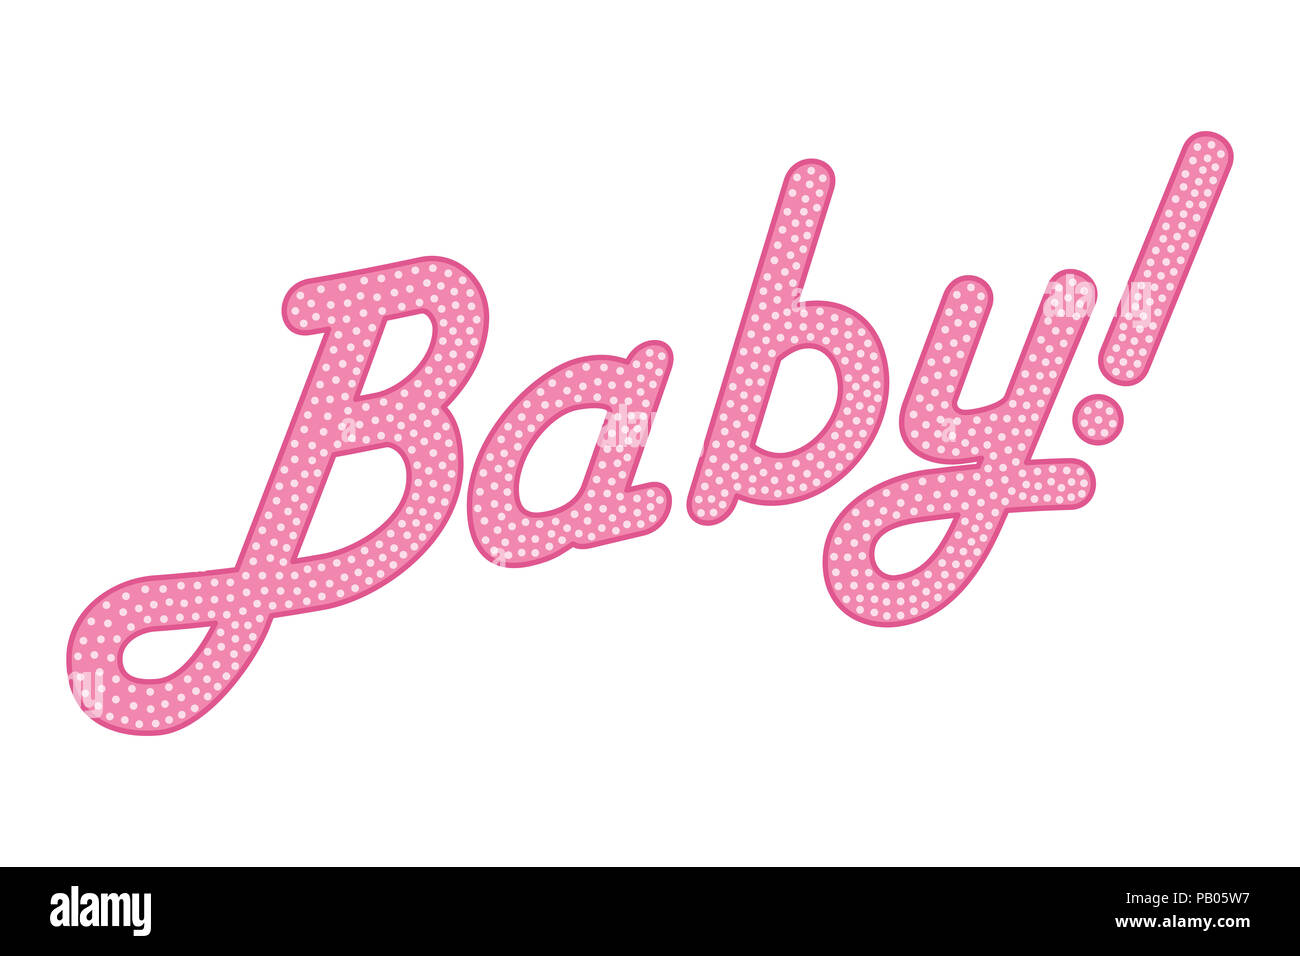 Cursive lettering of the word BABY with callsign, pink colored with bright and small dots. Randomly dotted, italic writing. Isolated. Illustration. - Stock Image